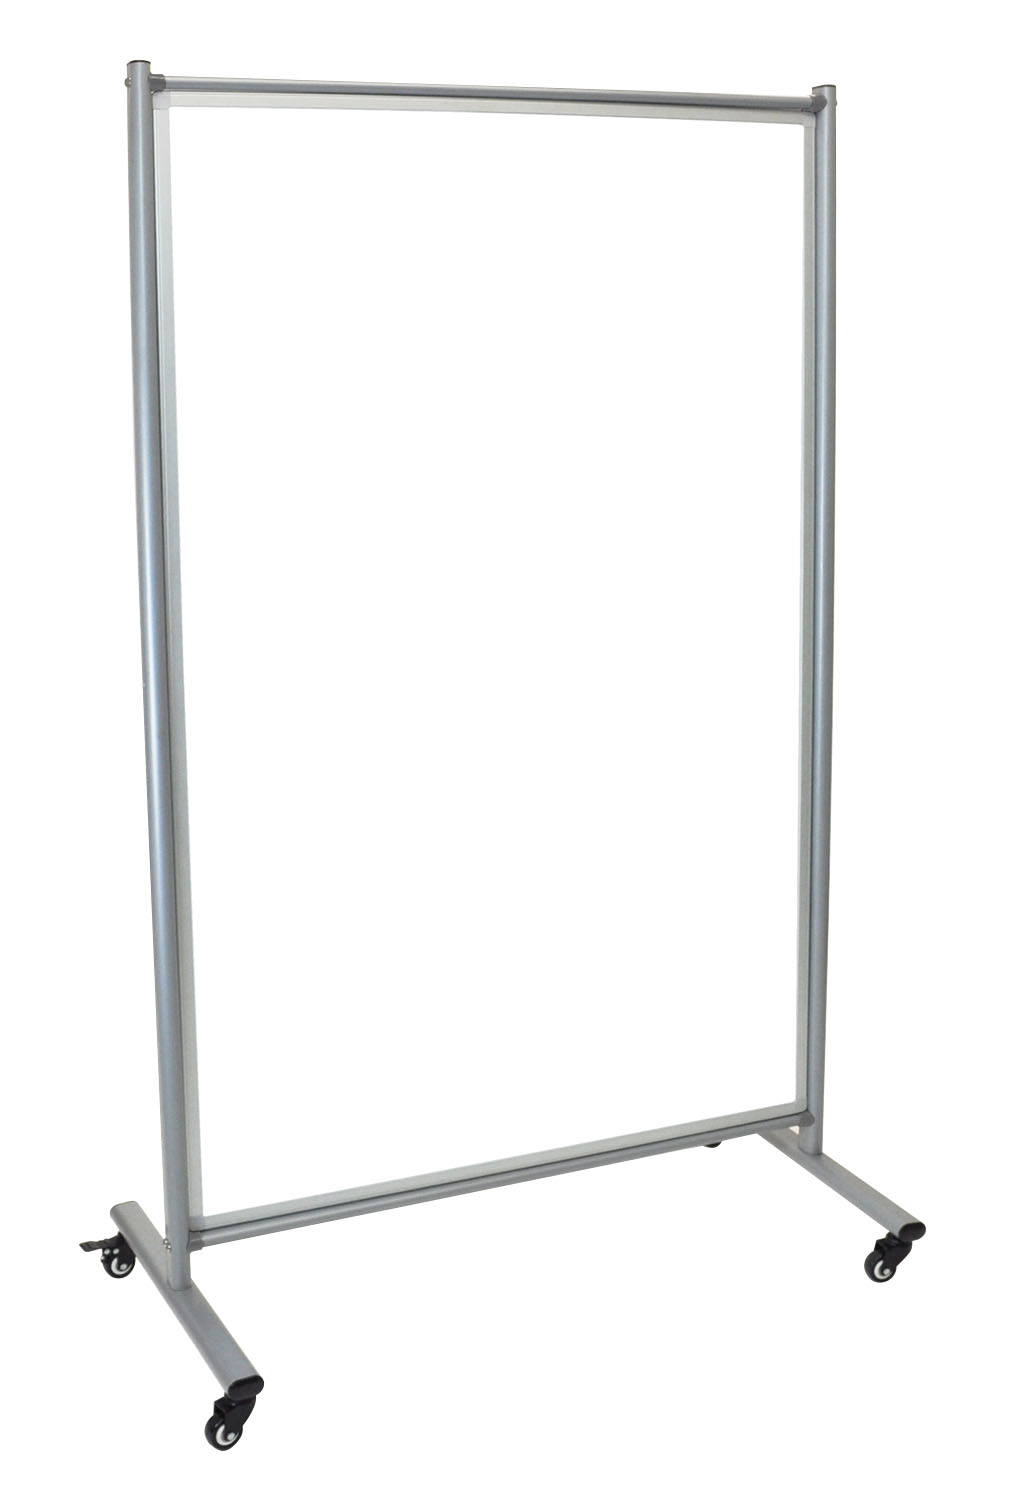 Offex Home Office Mobile Rolling Whiteboard Room Divider